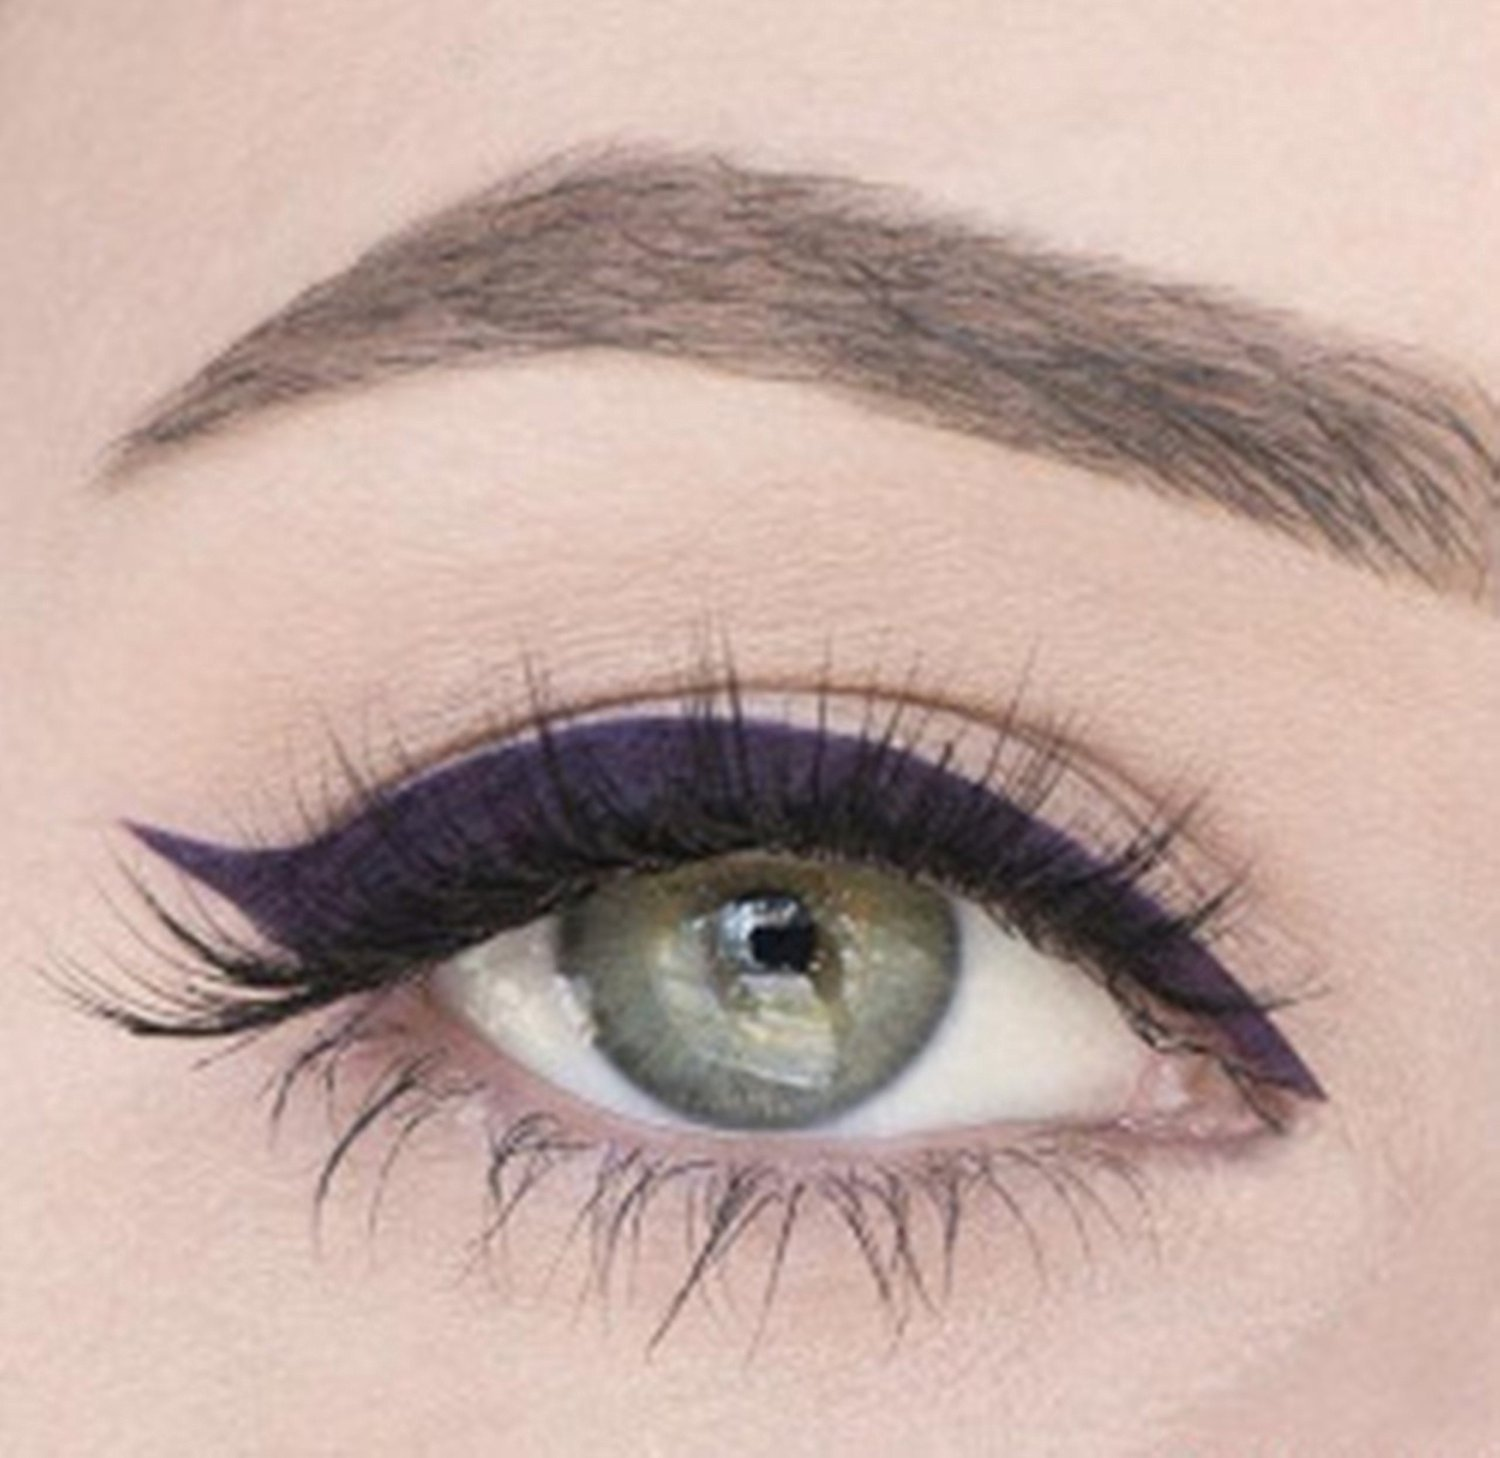 Amazon.com : Benefit Theyre Real Push Up Liner - Beyond Purple 1.4g/0.04oz : Beauty